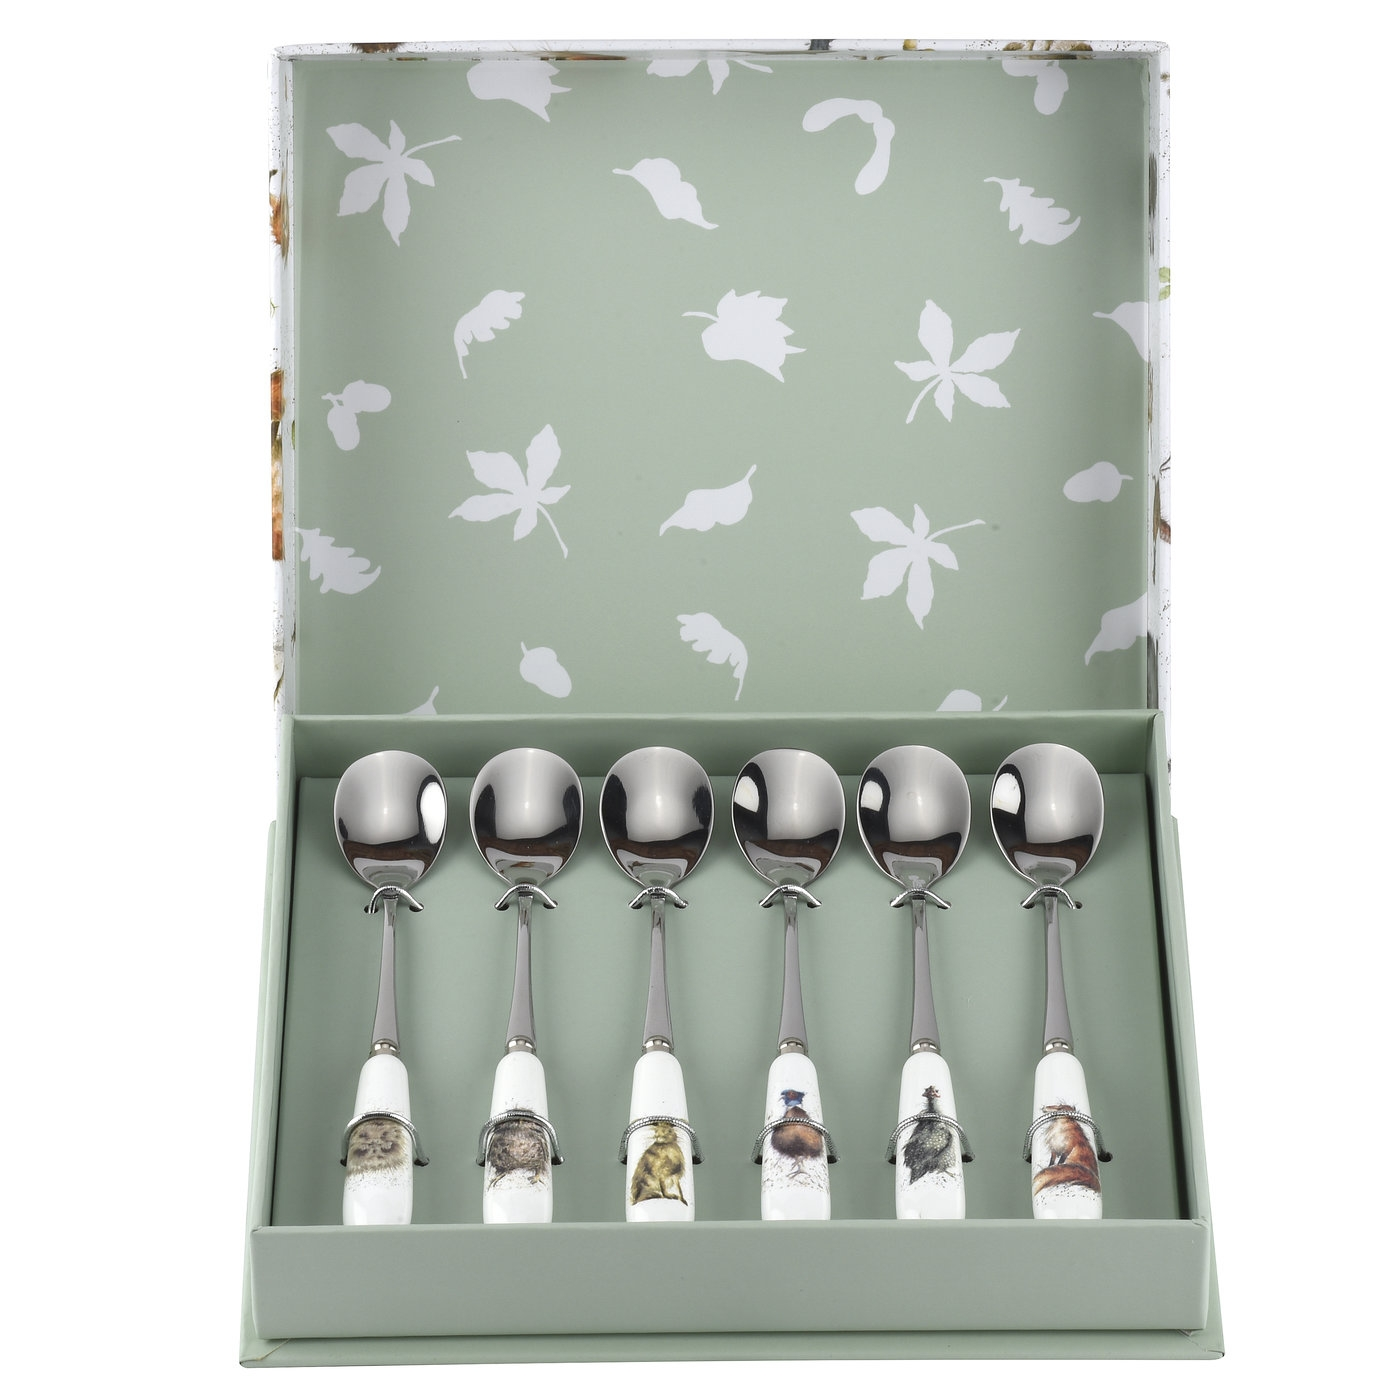 Wrendale Designs Set of 6 Tea Spoons (Assorted) image number 0